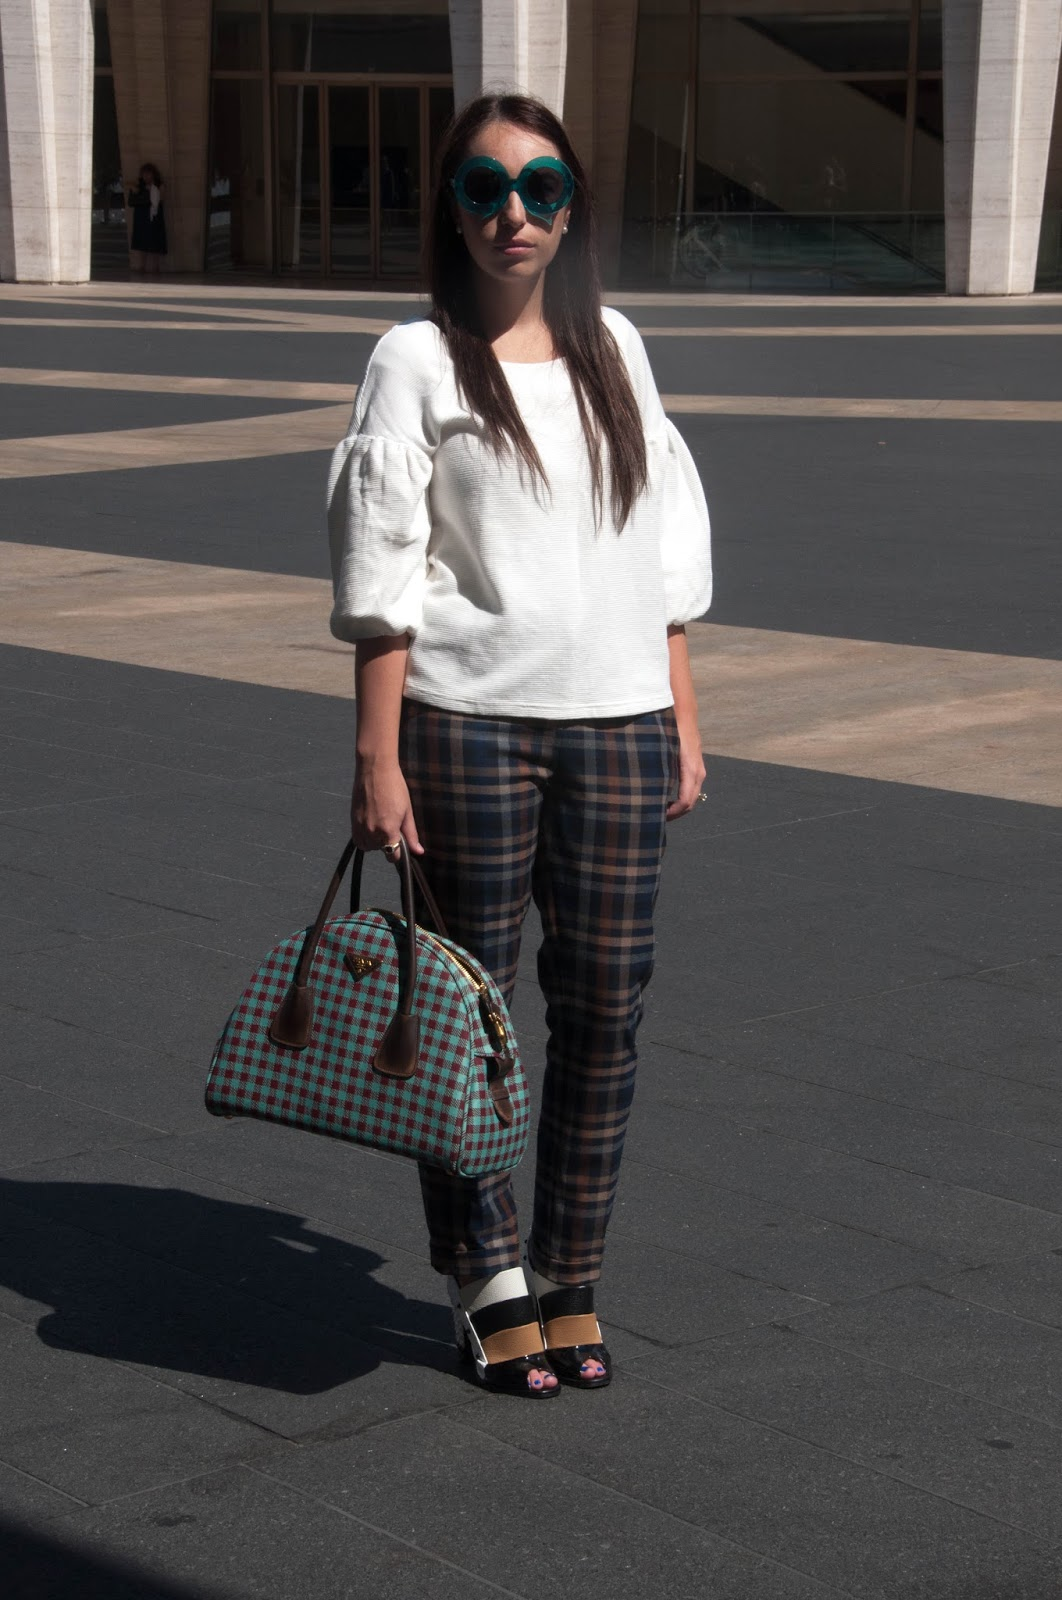 fashion blog, style blog, new york fashion week, anthropologie ootd, ootd, karen walker space bug